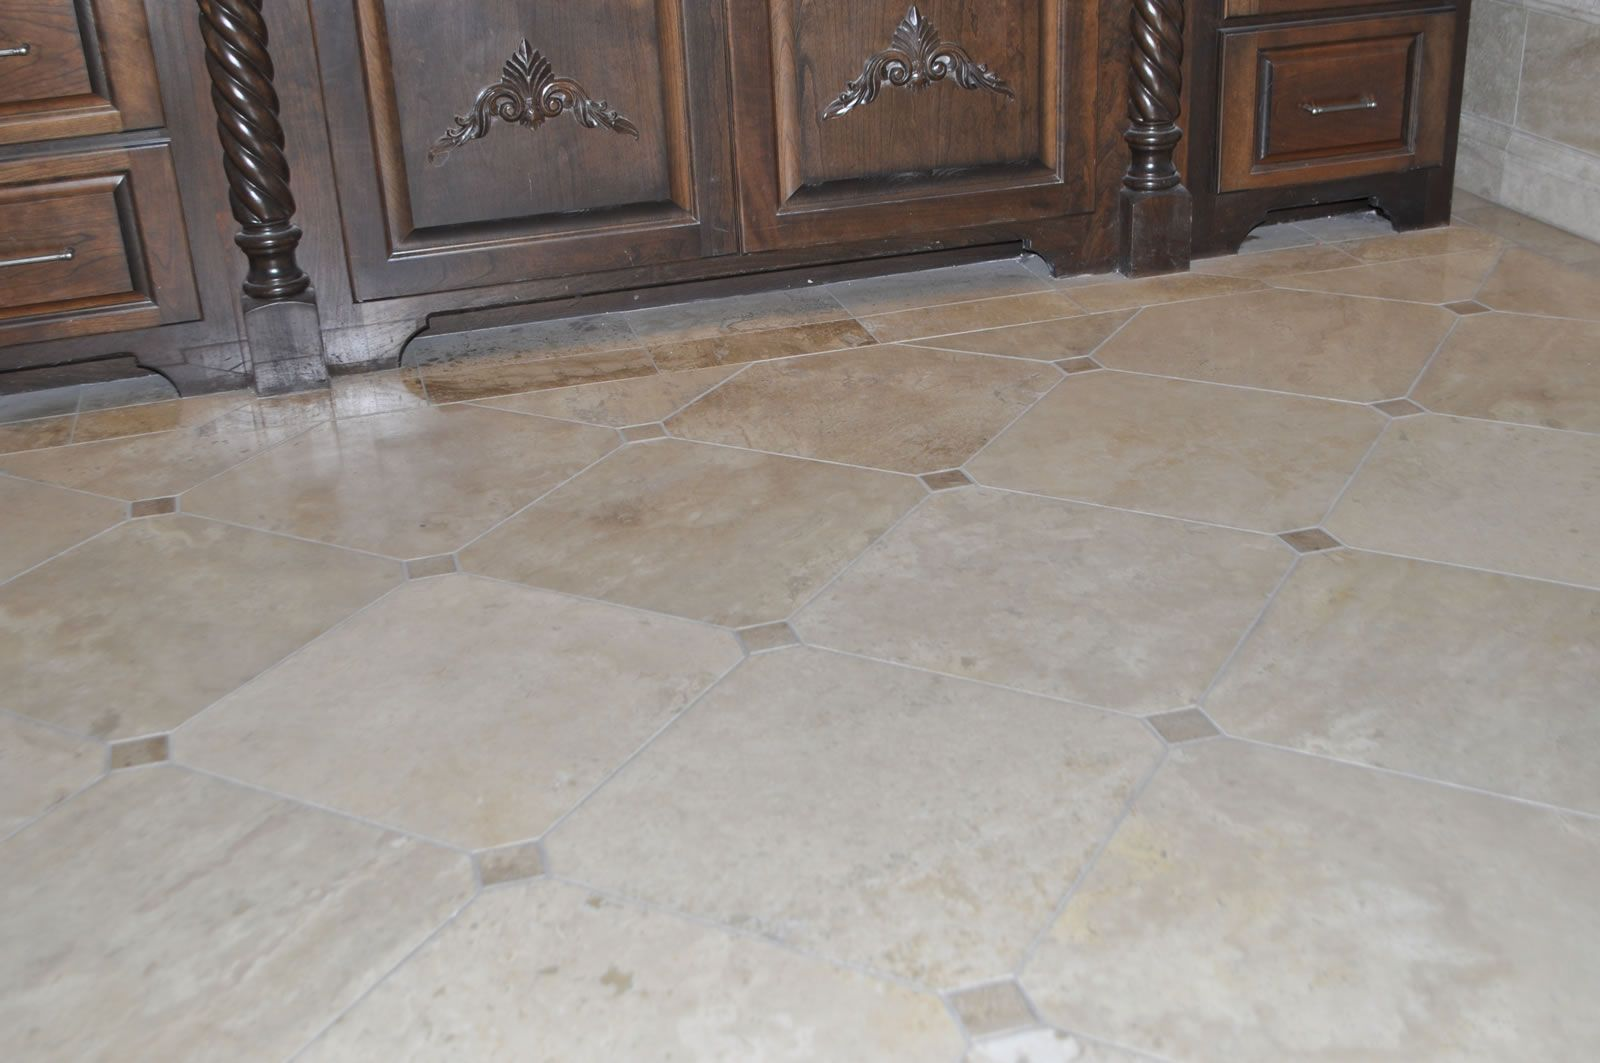 Porcelain Or Ceramic Tile For Kitchen Floor Porcelain Tile In Living Room Ceramic Porcelain Stone Mosaic